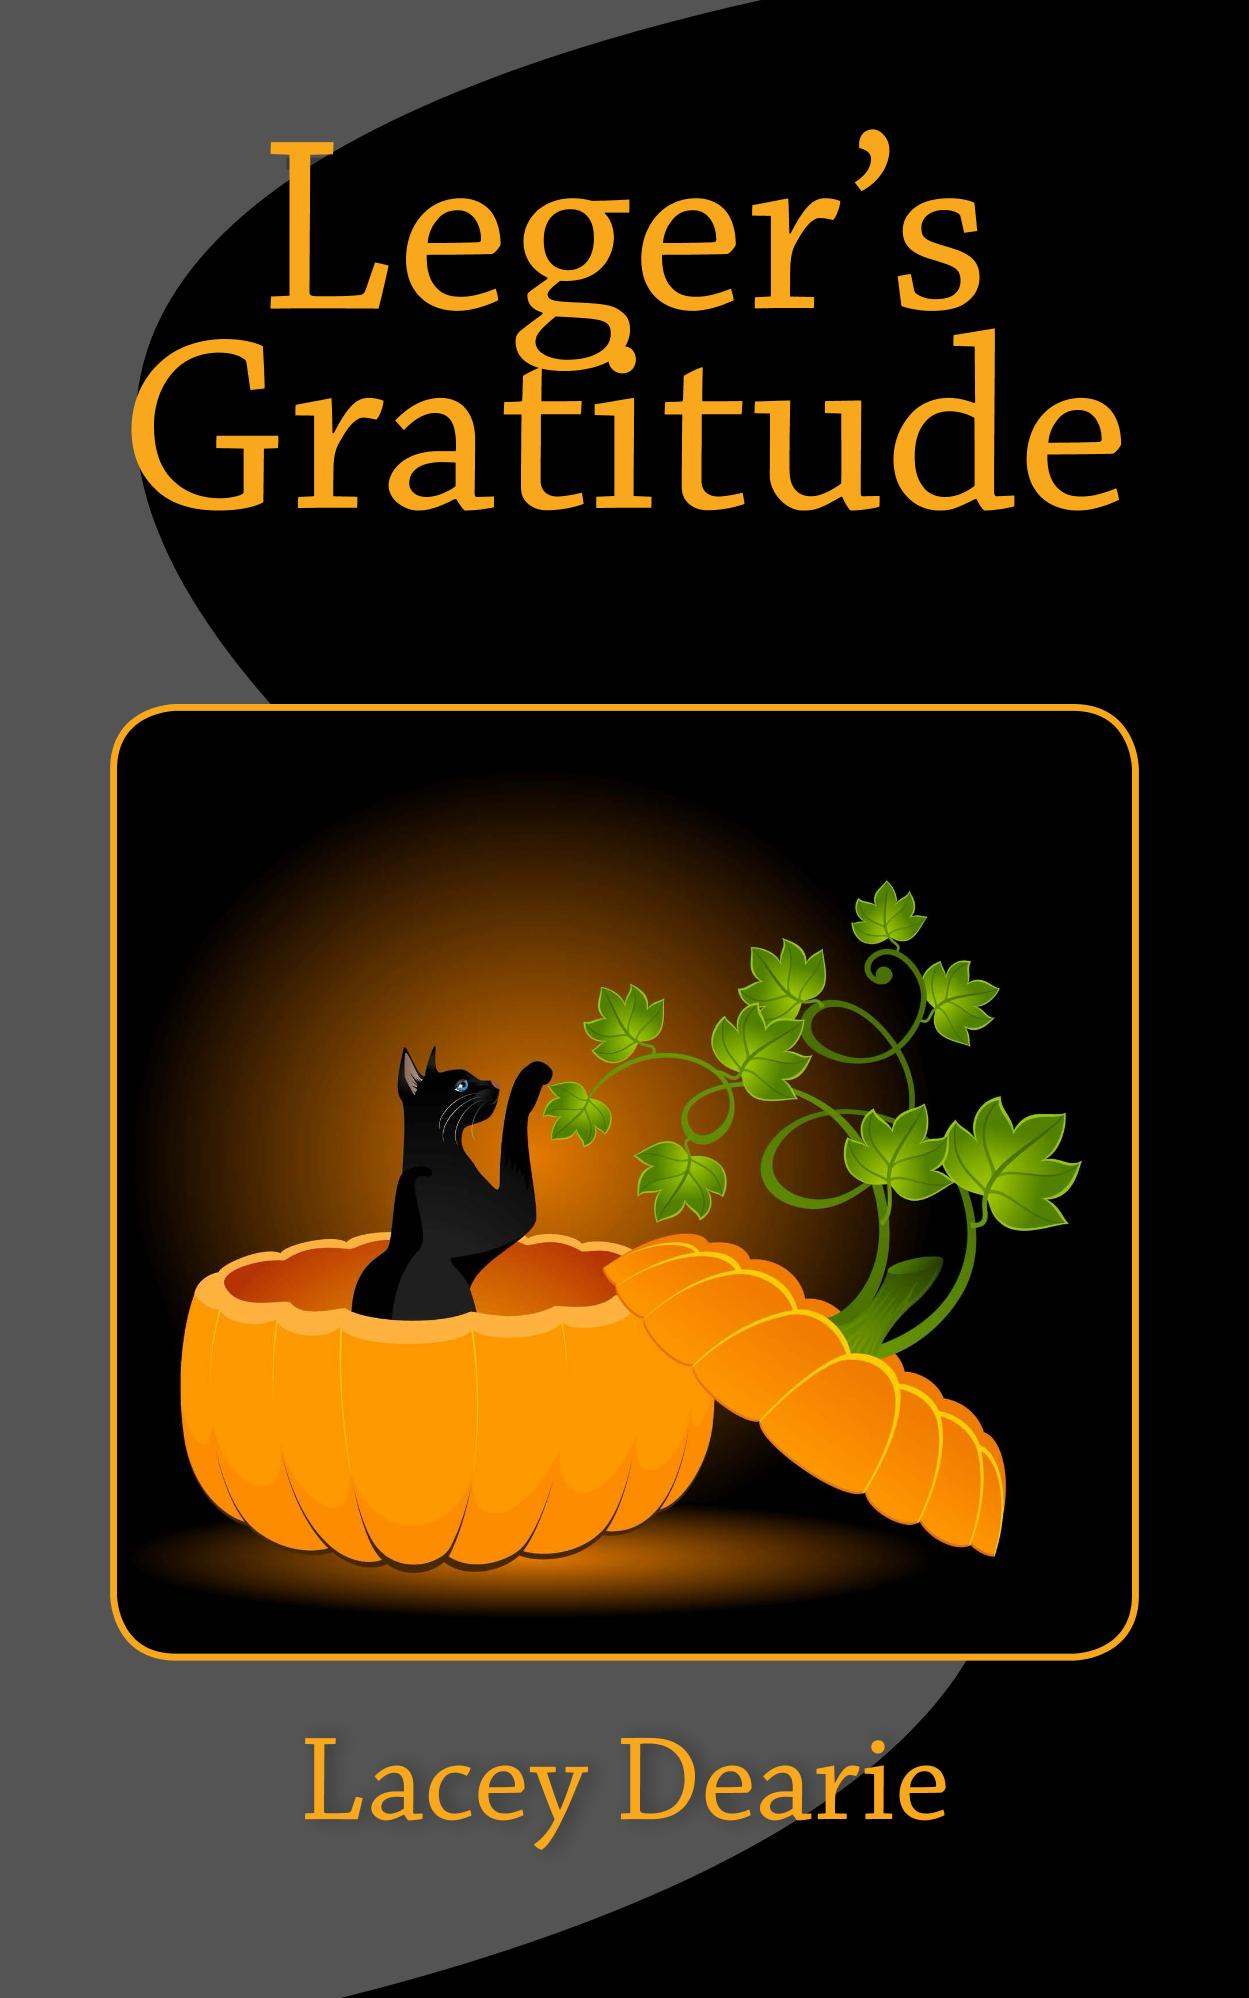 lacey dearie books leger's gratitude thanksgiving cat sleuth story